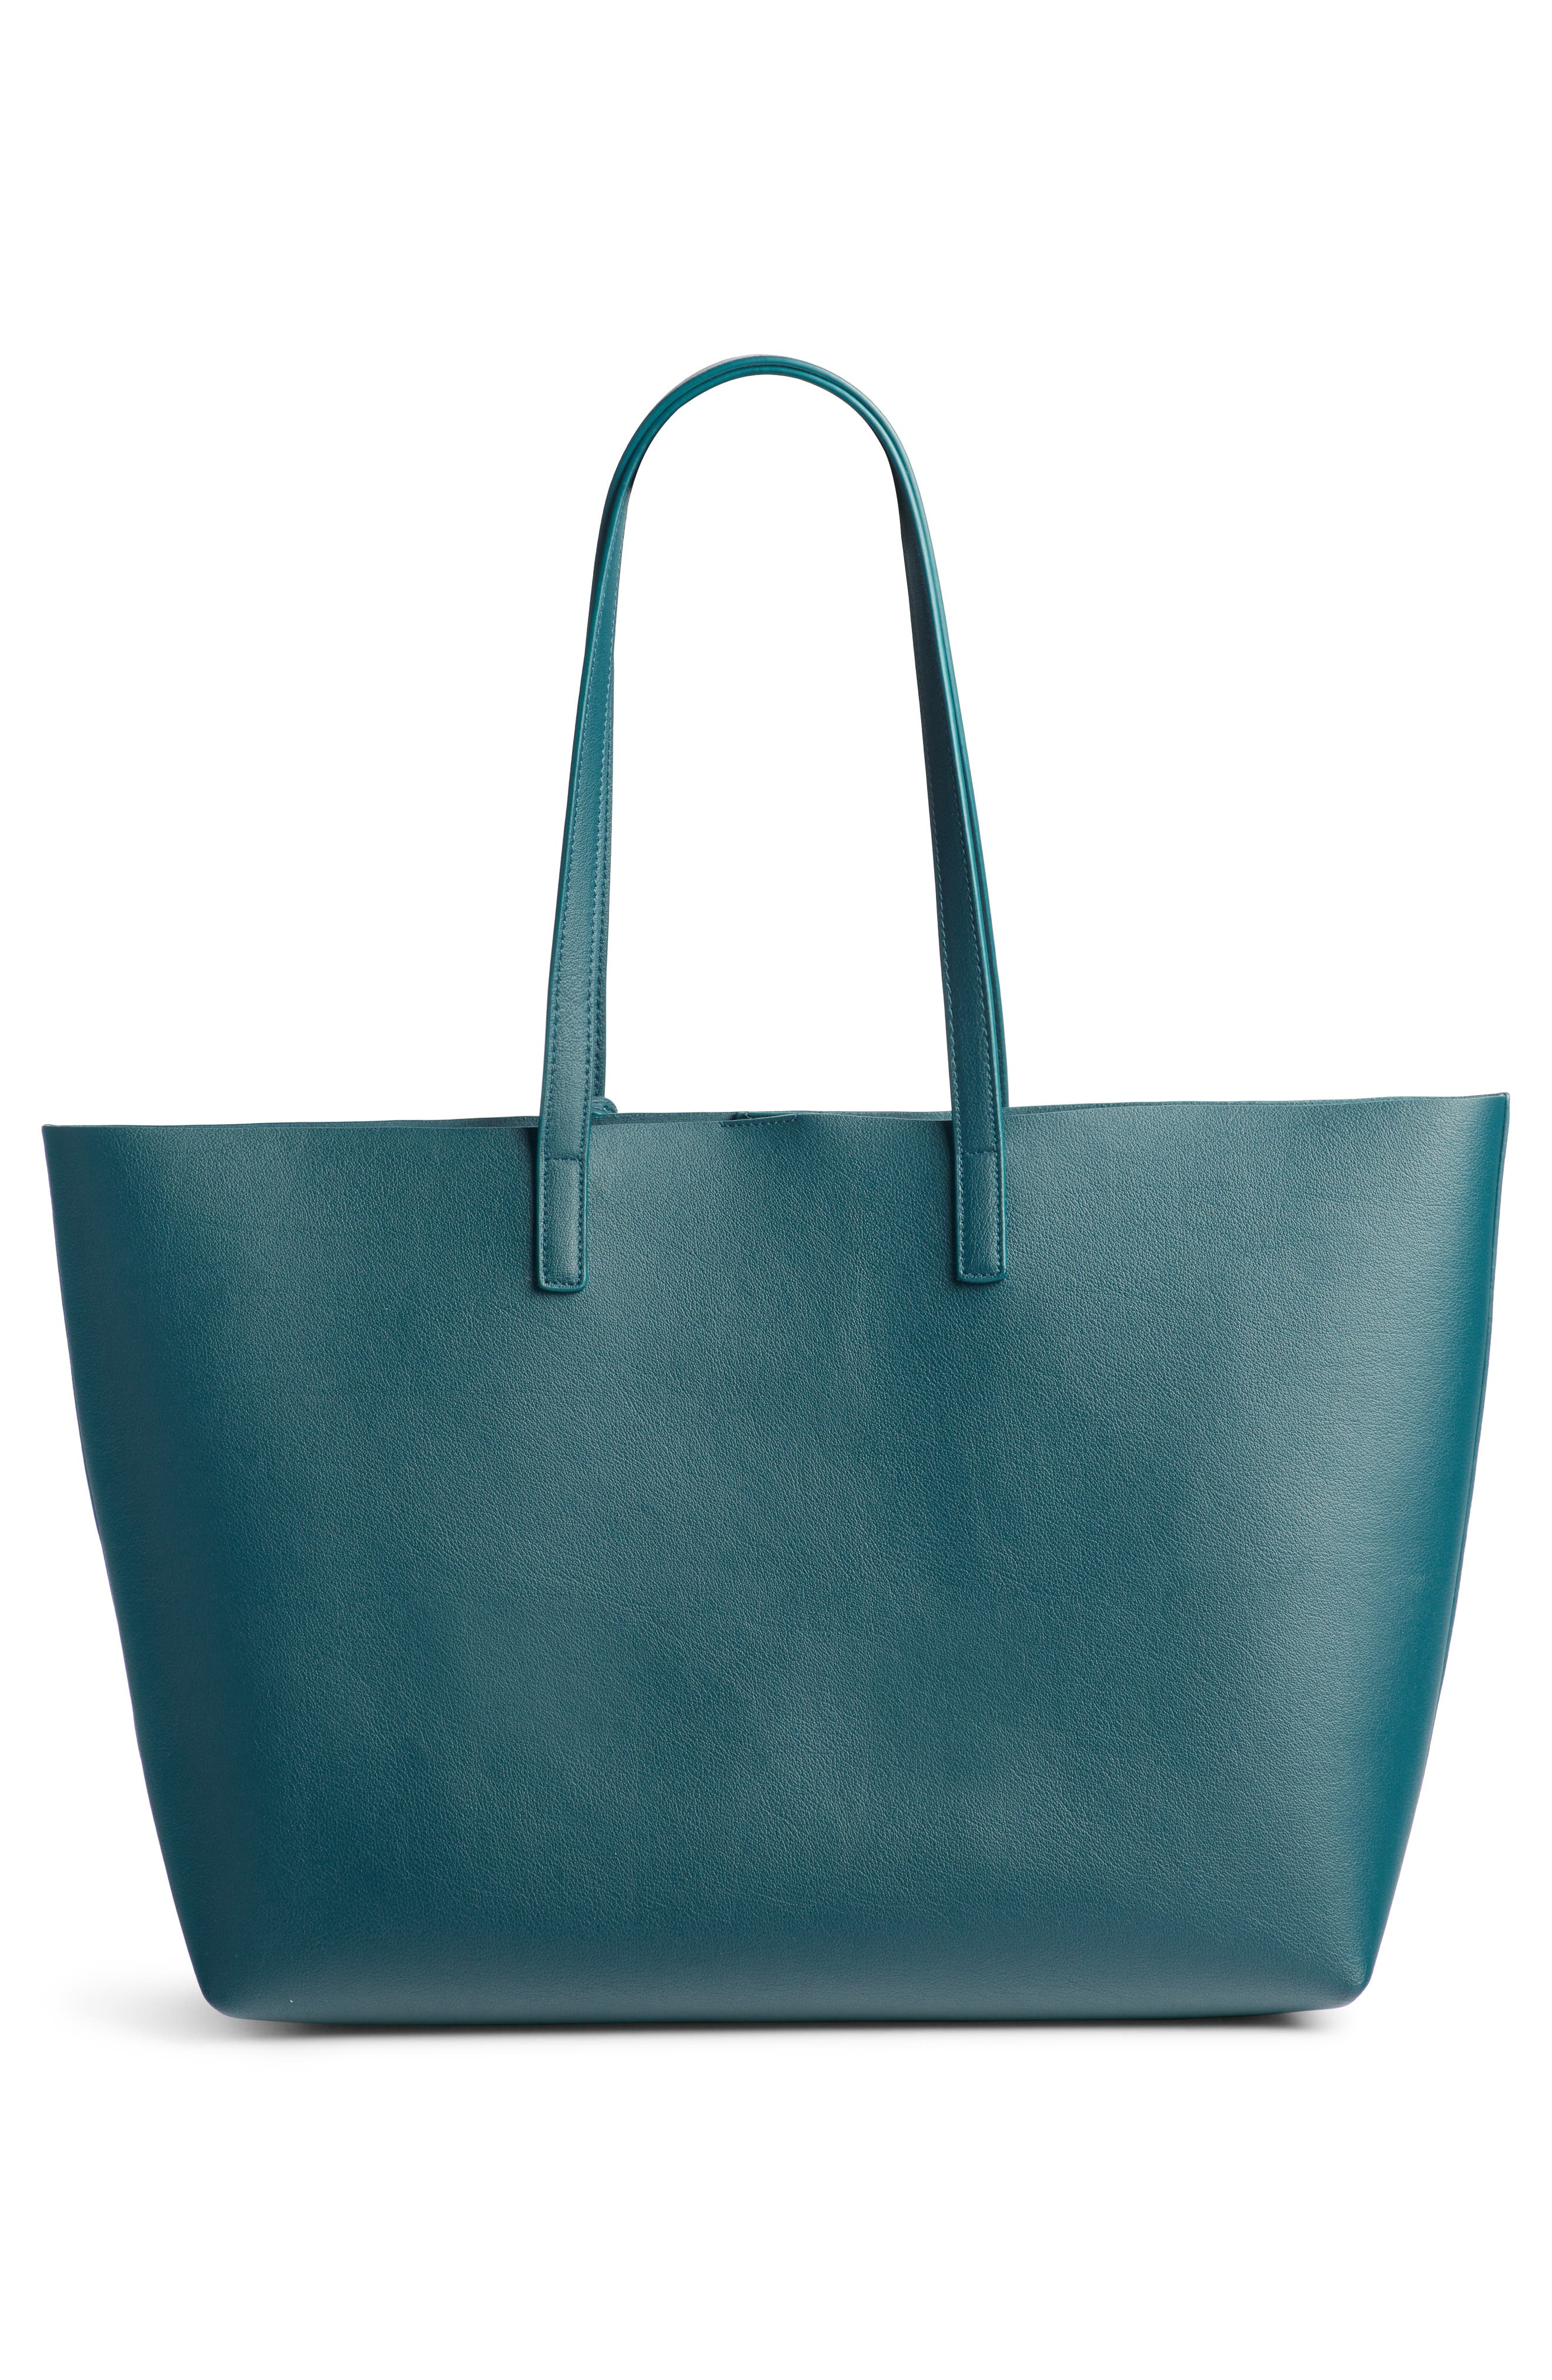 'Shopping' Leather Tote,                             Alternate thumbnail 5, color,                             Dark Turquoise